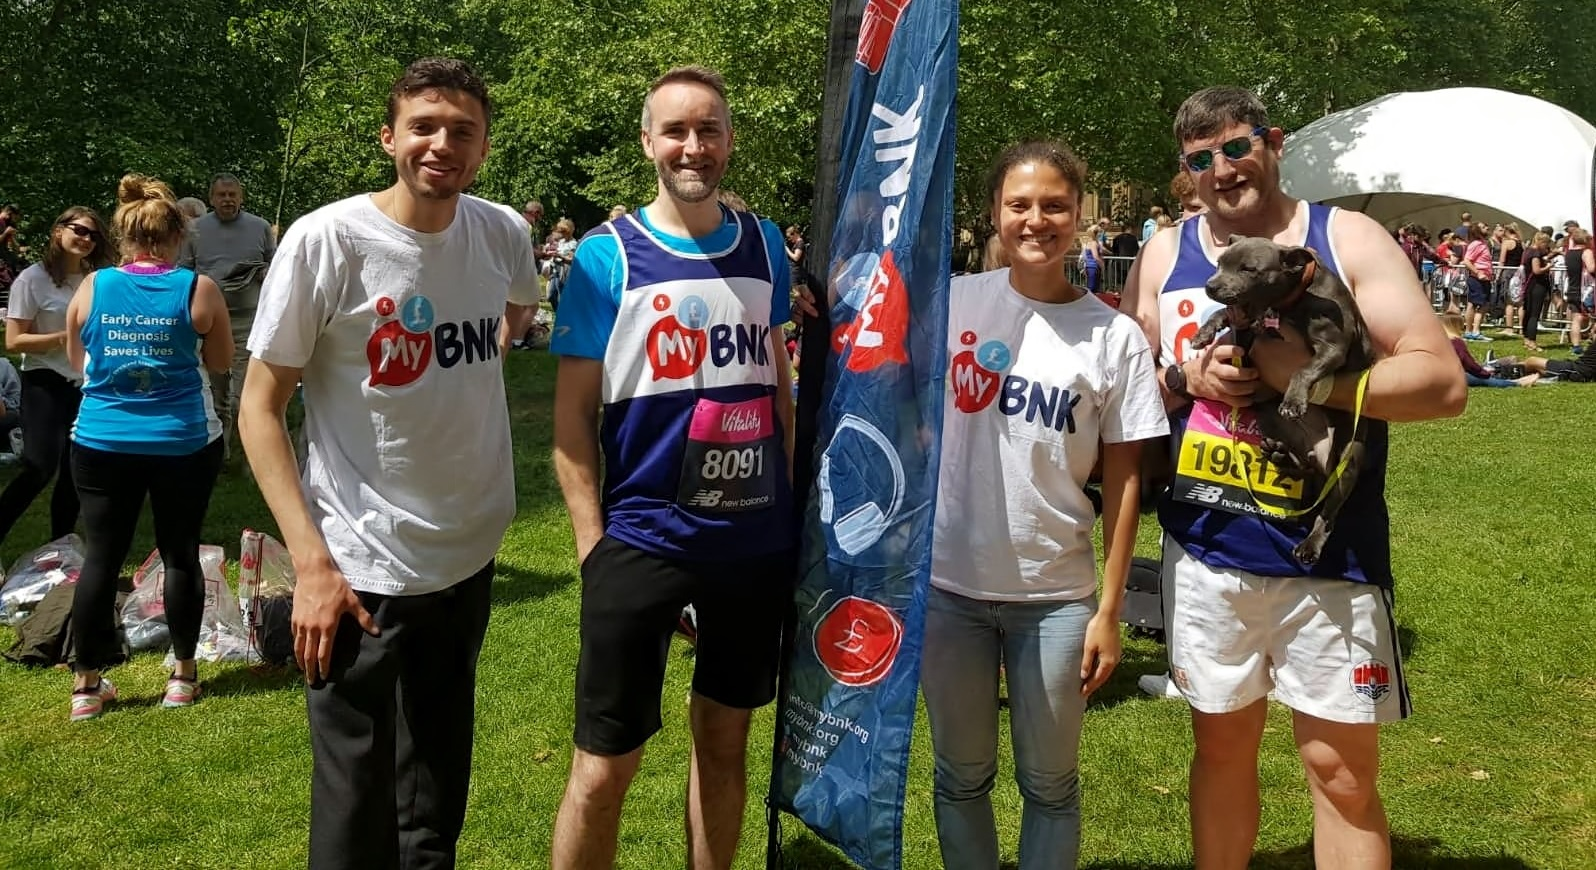 Runners raise vital funds for young people